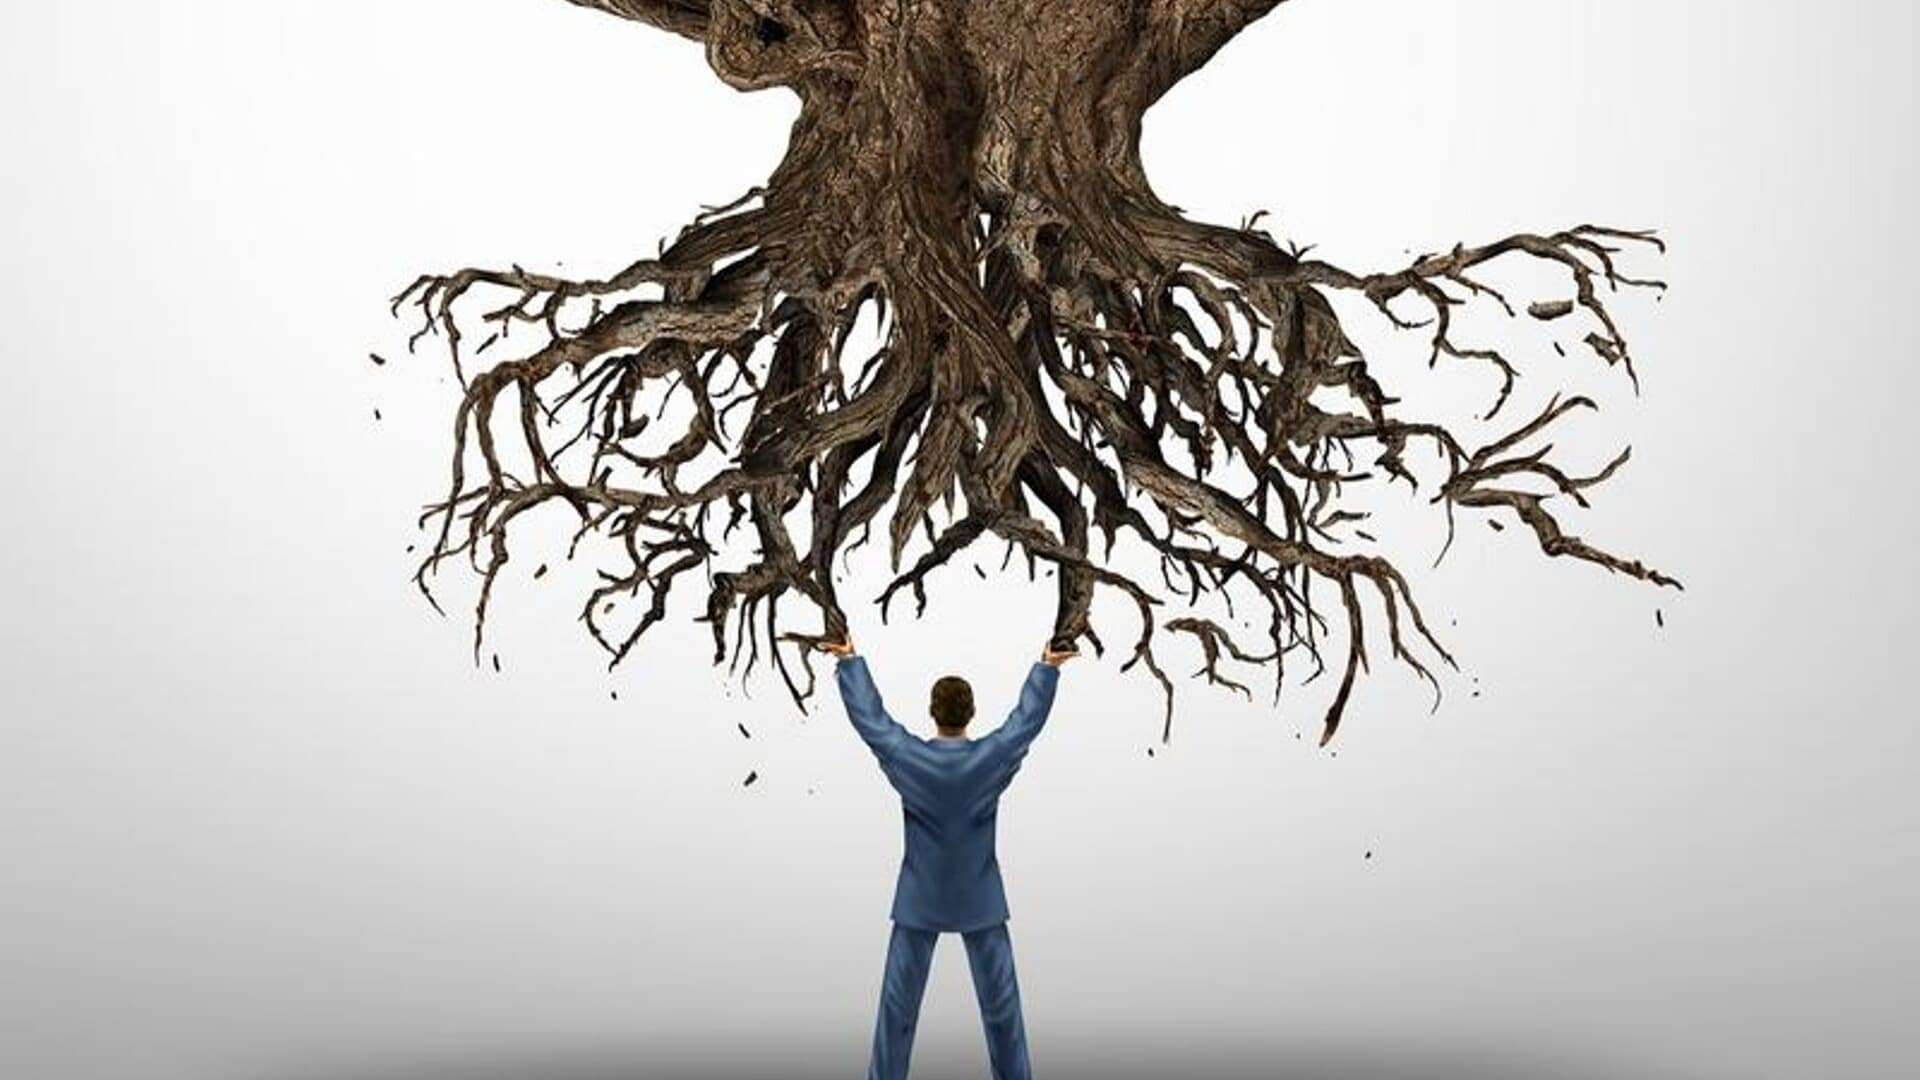 How Do You Handle Being Uprooted in Your Life?